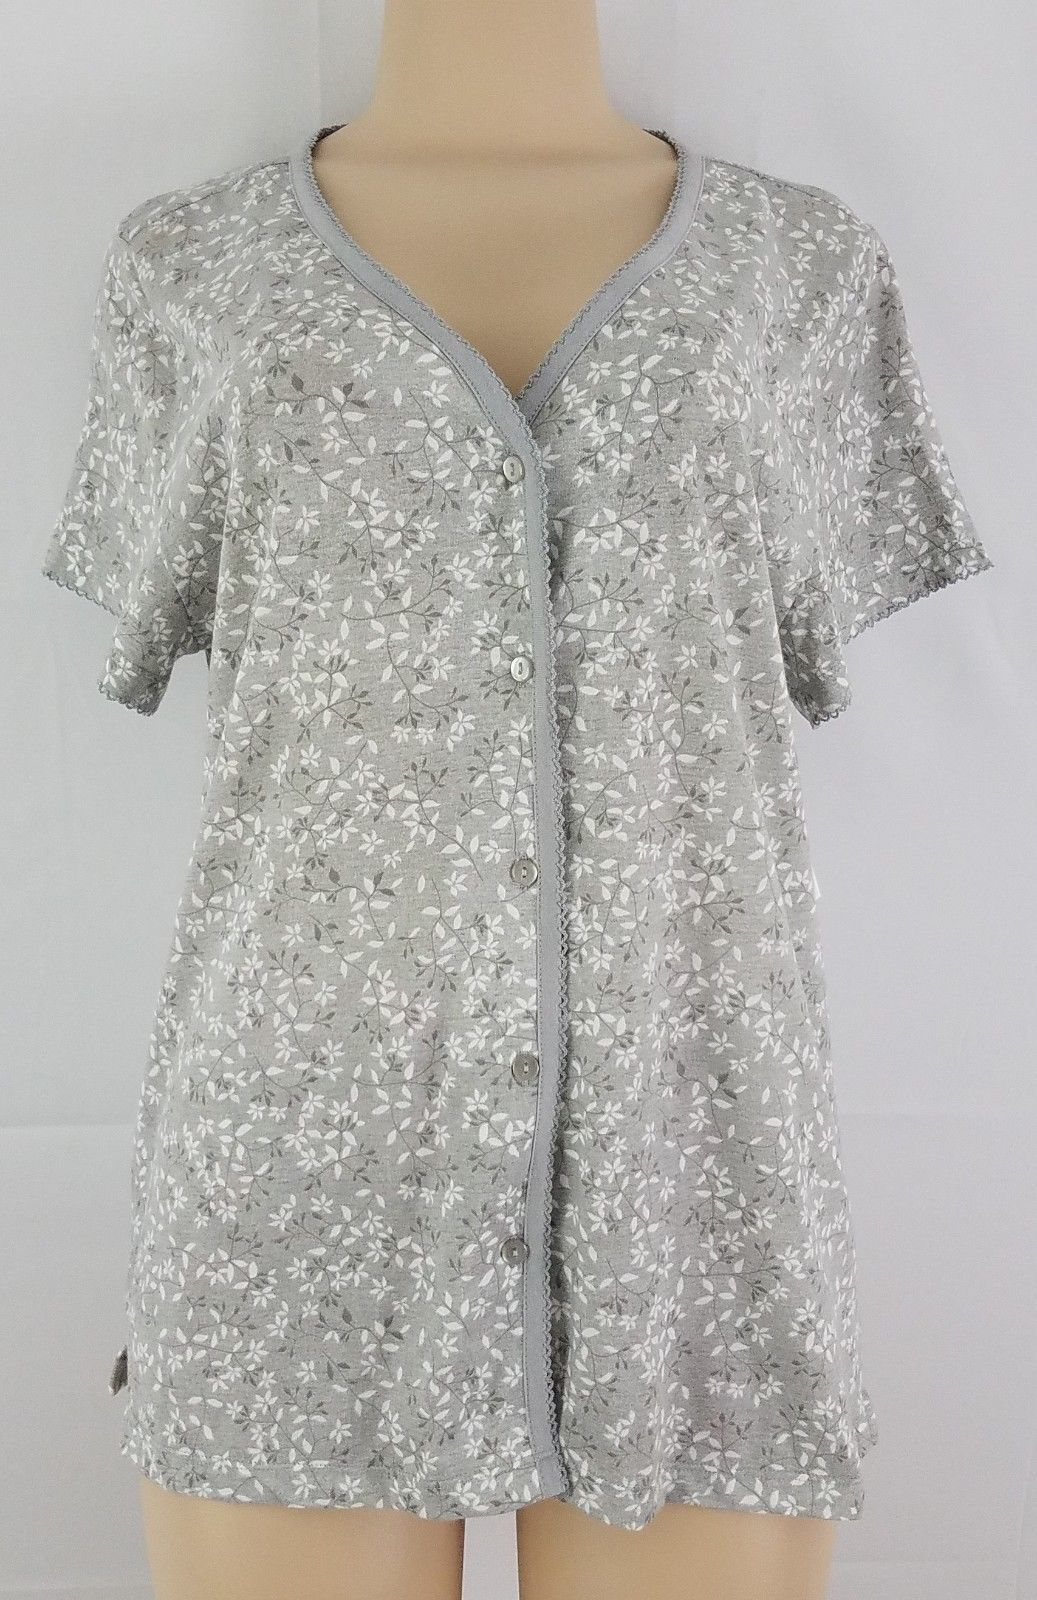 7a05c33c92a3 Charter Club Intimates Women's Pajama Top and 50 similar items. 57